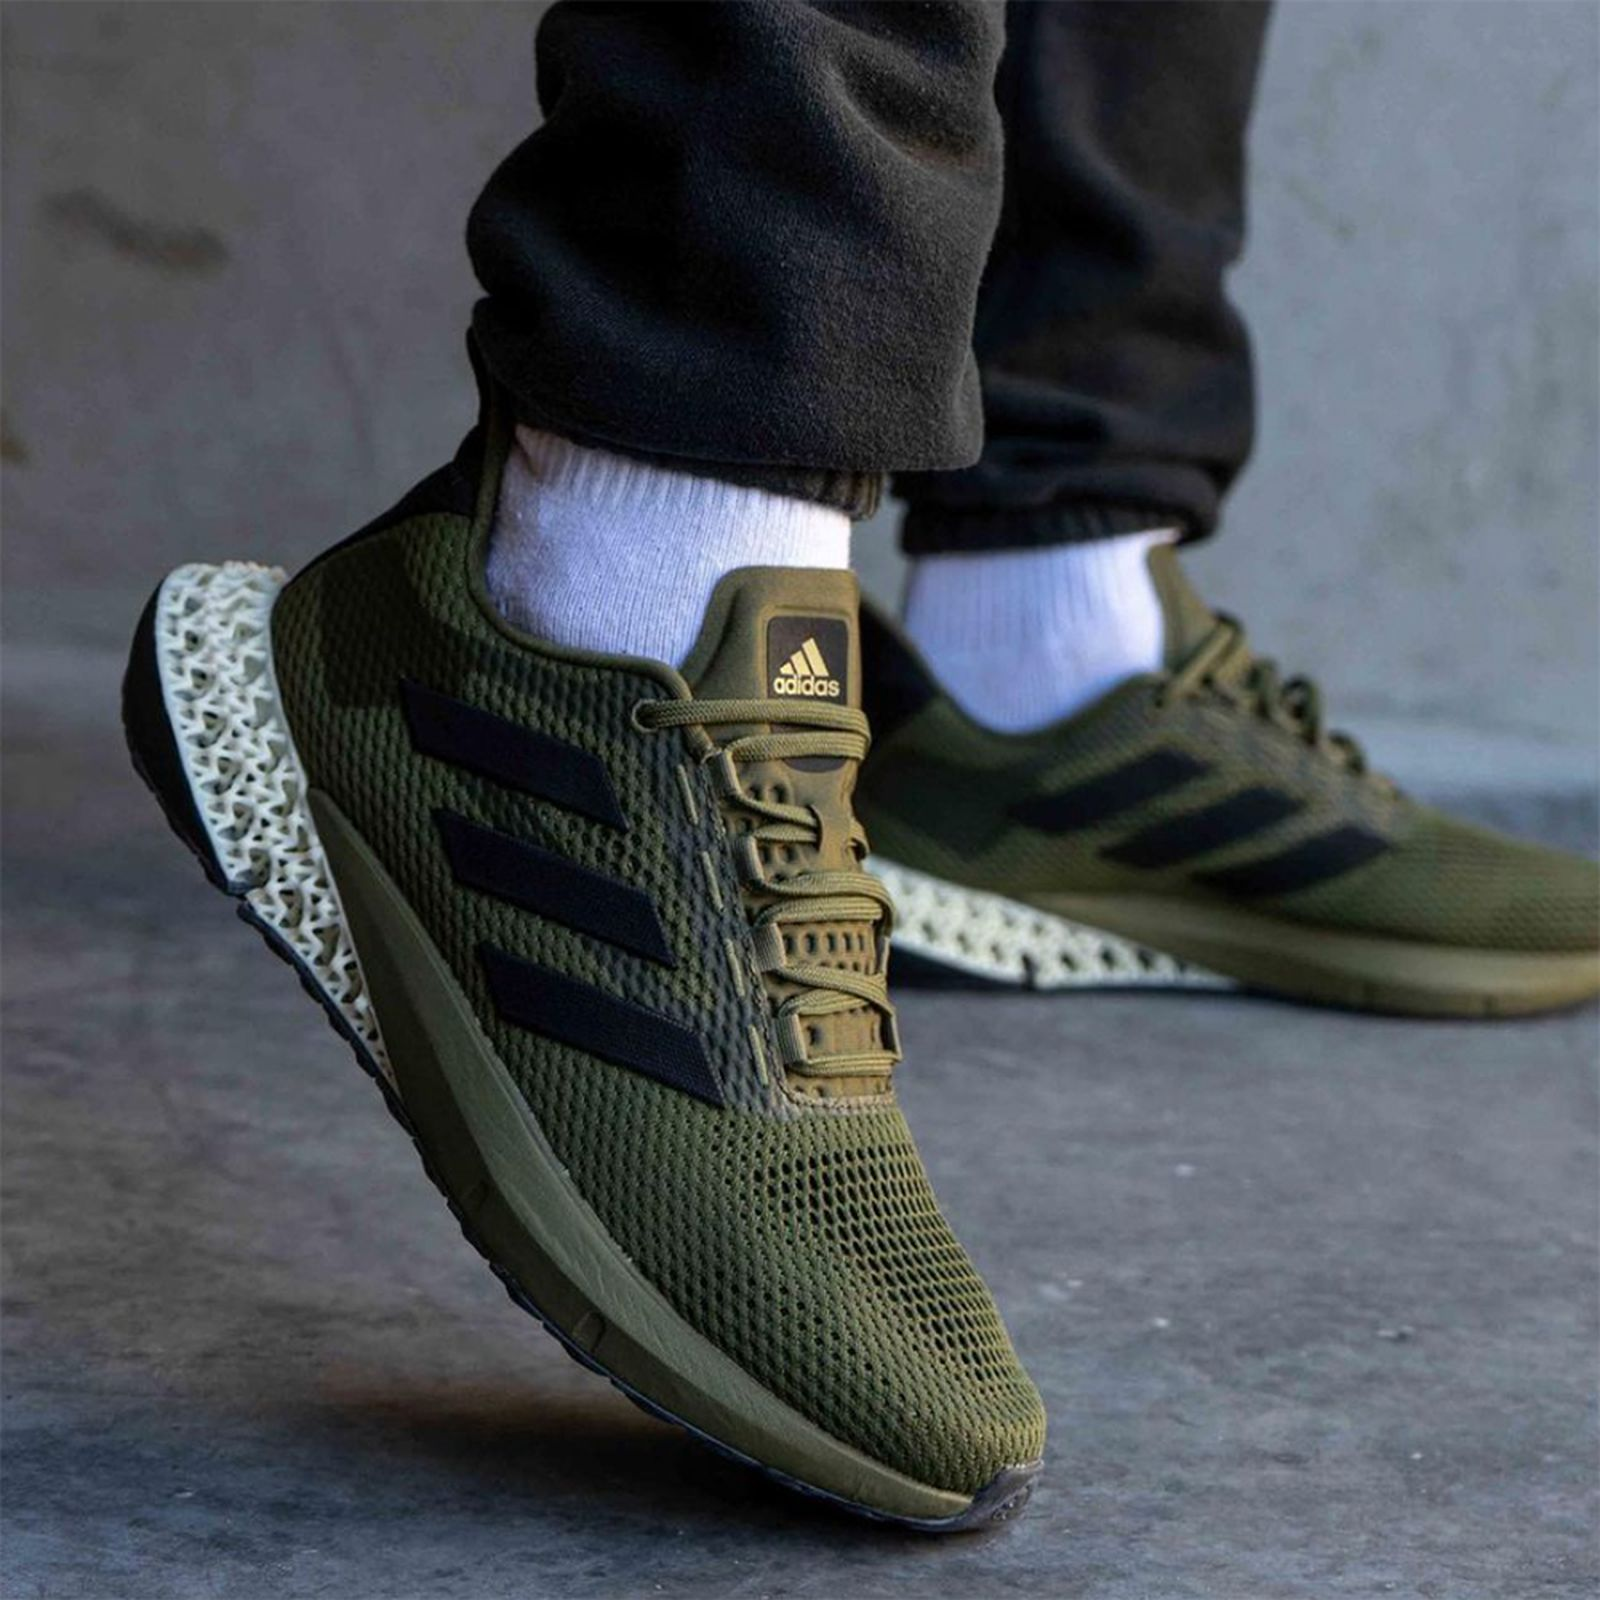 adidas-4d-kick-release-date-price-05